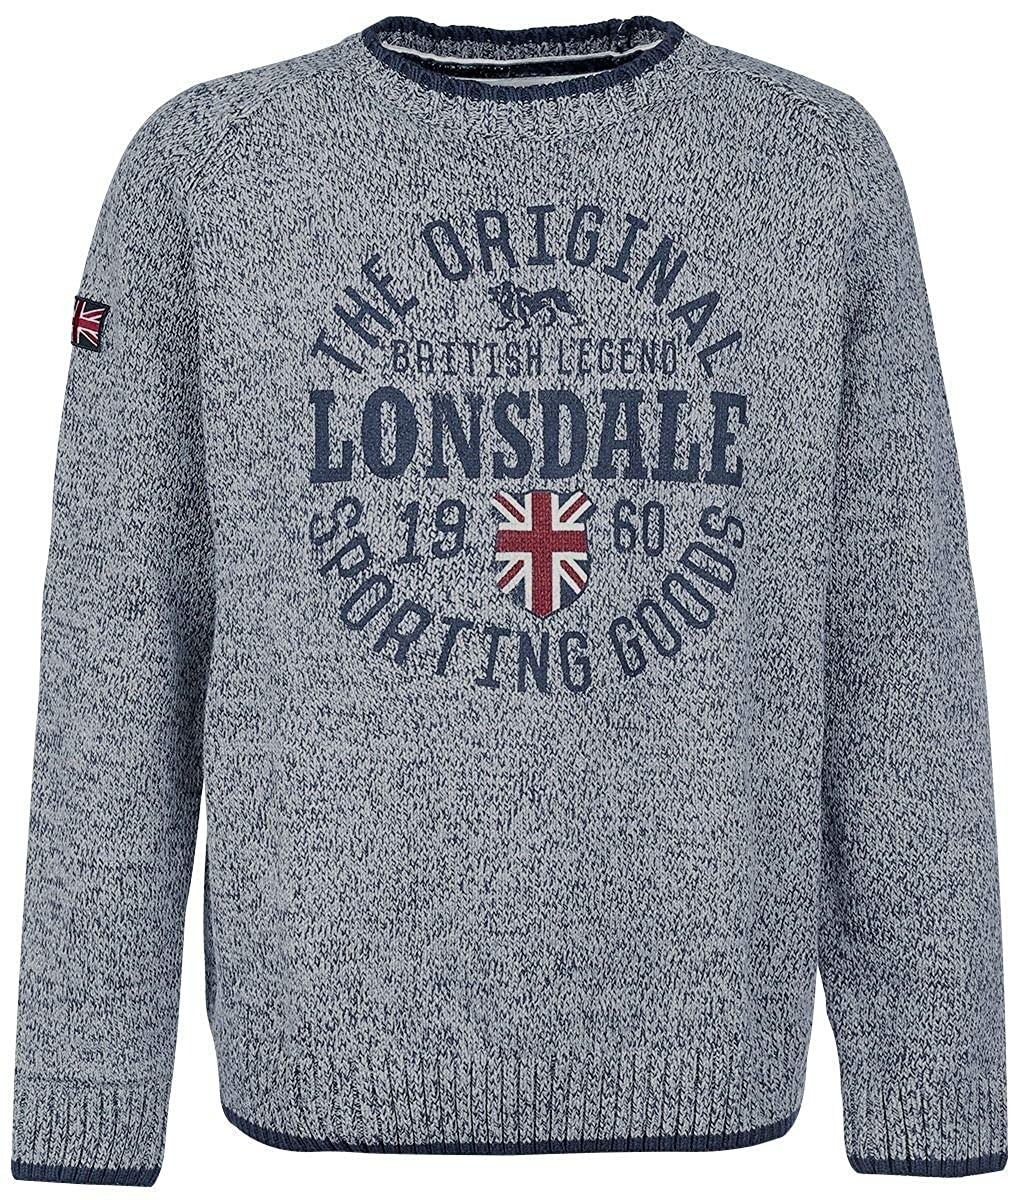 Lonsdale London Borden Sweatshirt grau